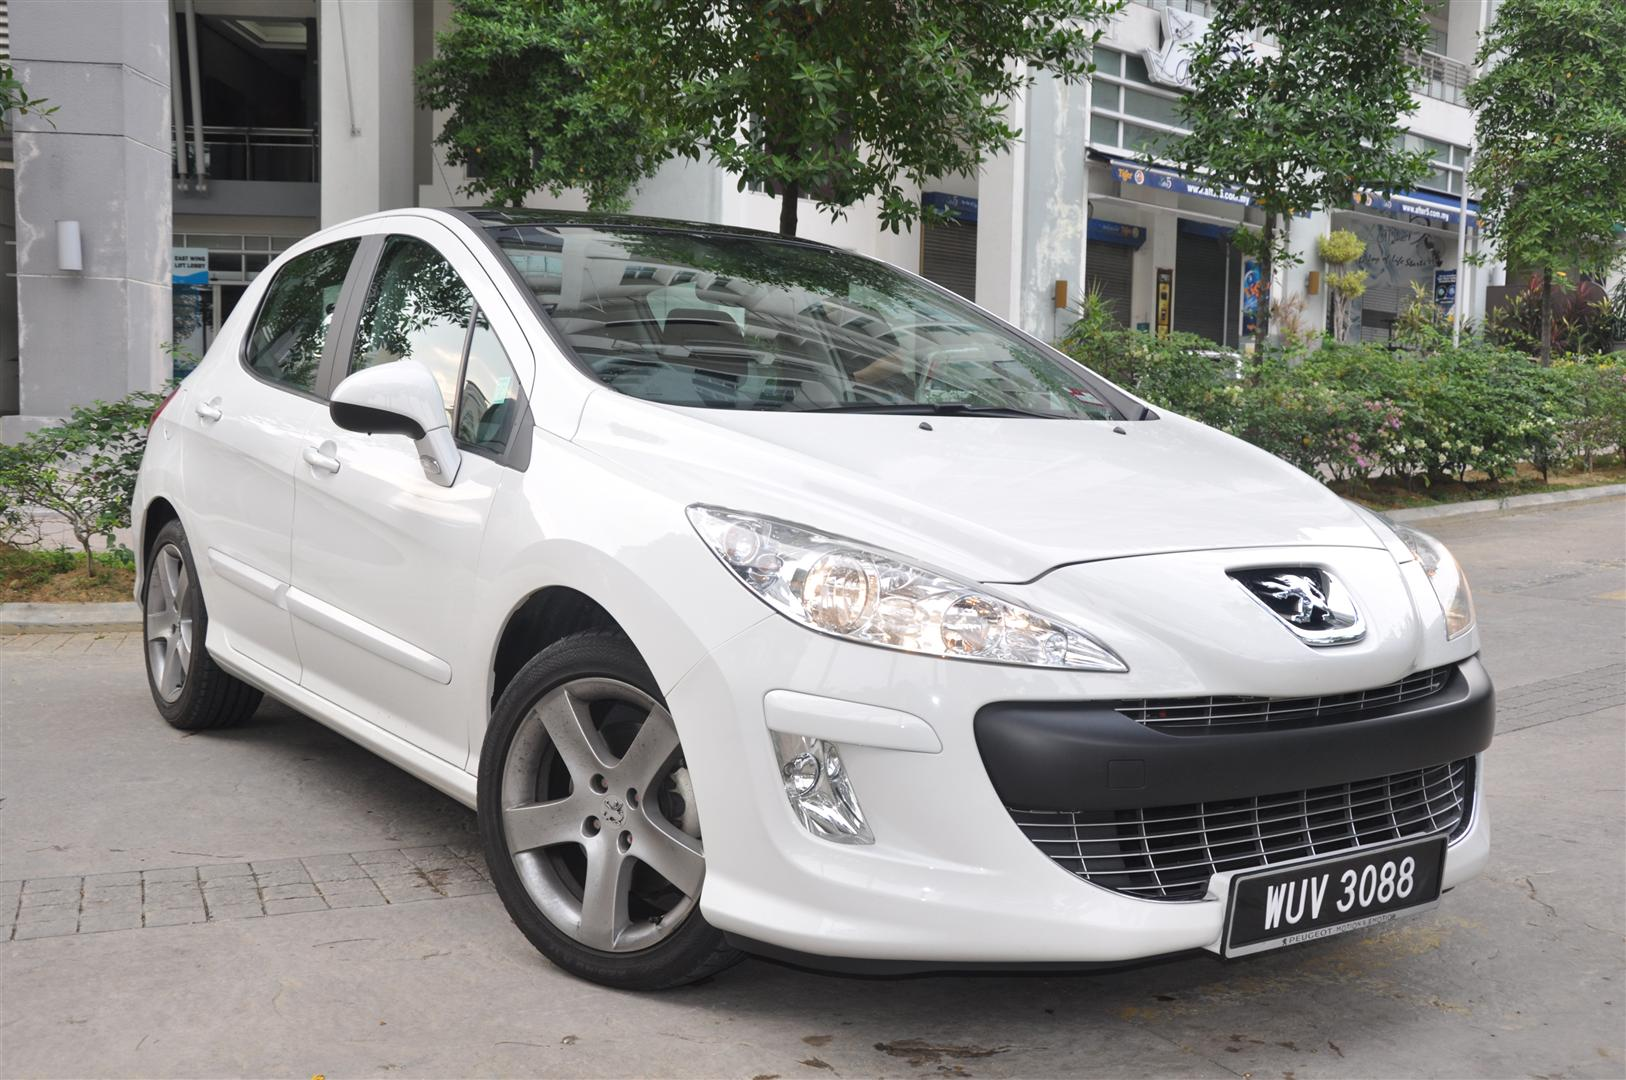 review: 2011 peugeot 308 turbo - wemotor